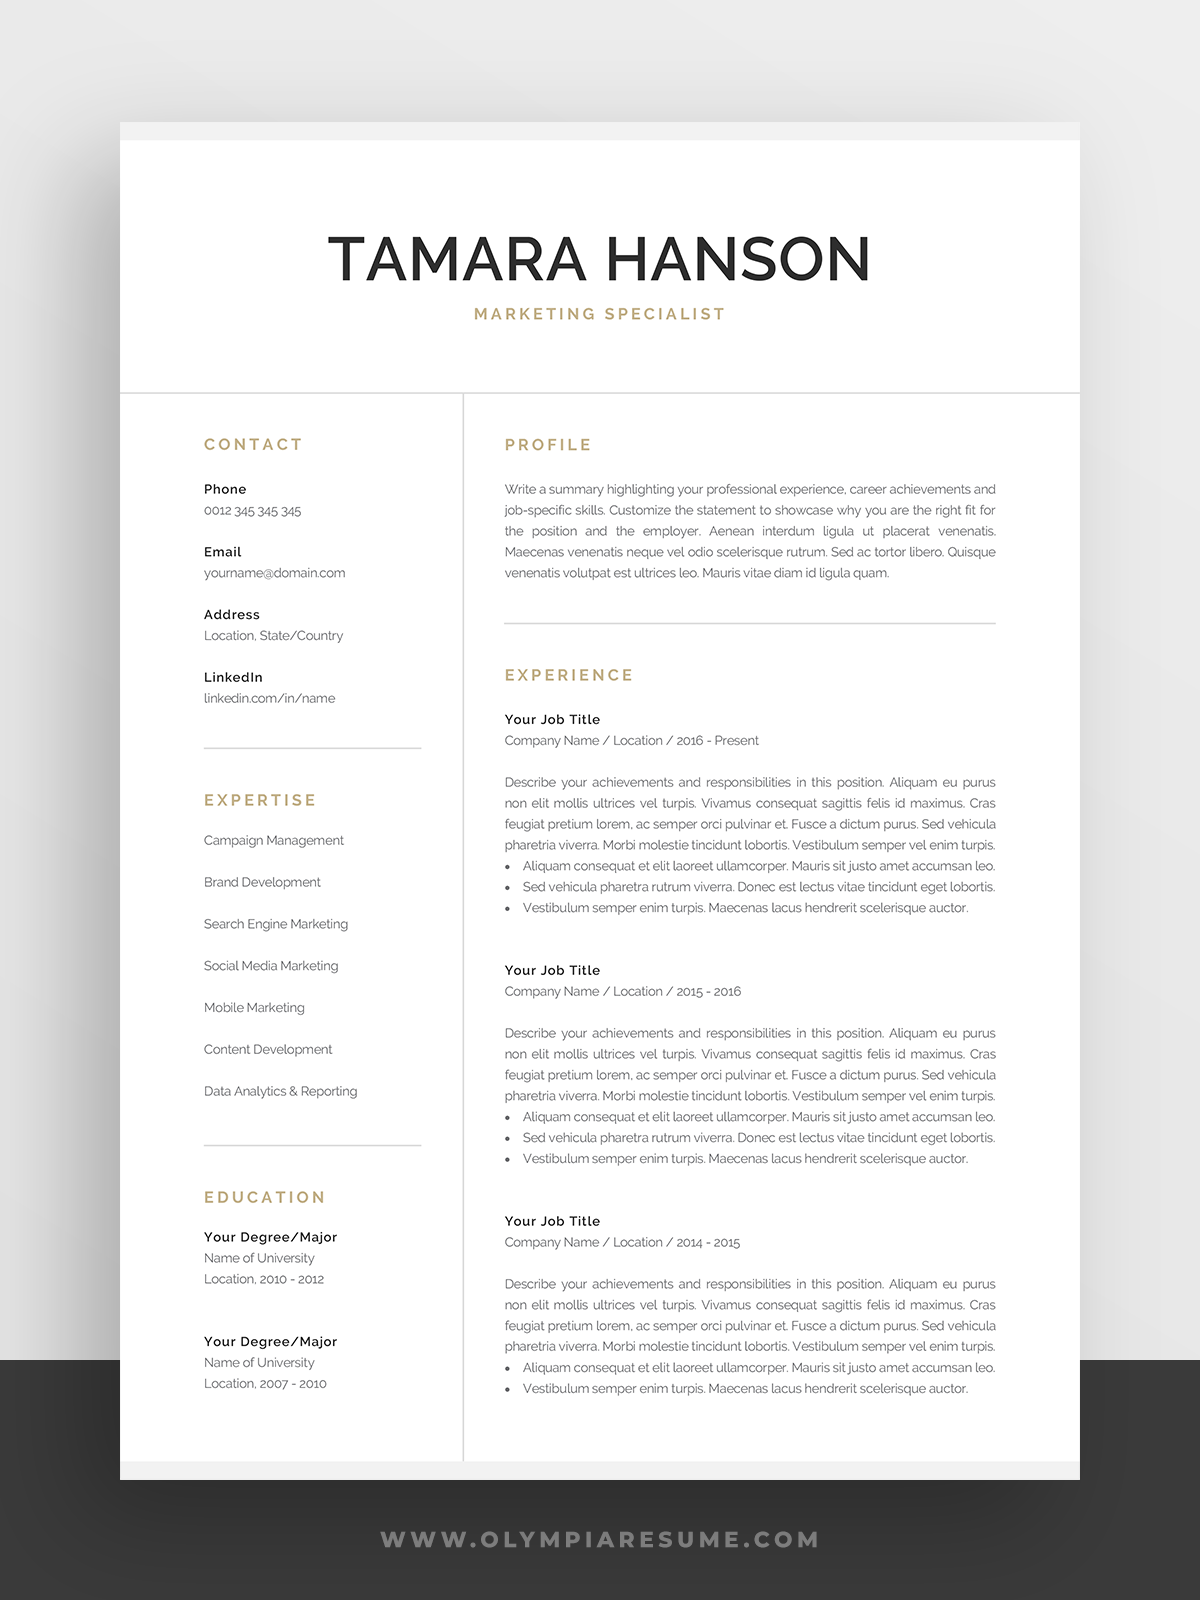 Professional Resume Template For Word Pages Modern Etsy In 2020 Resume Template Word Resume Template Professional Marketing Resume